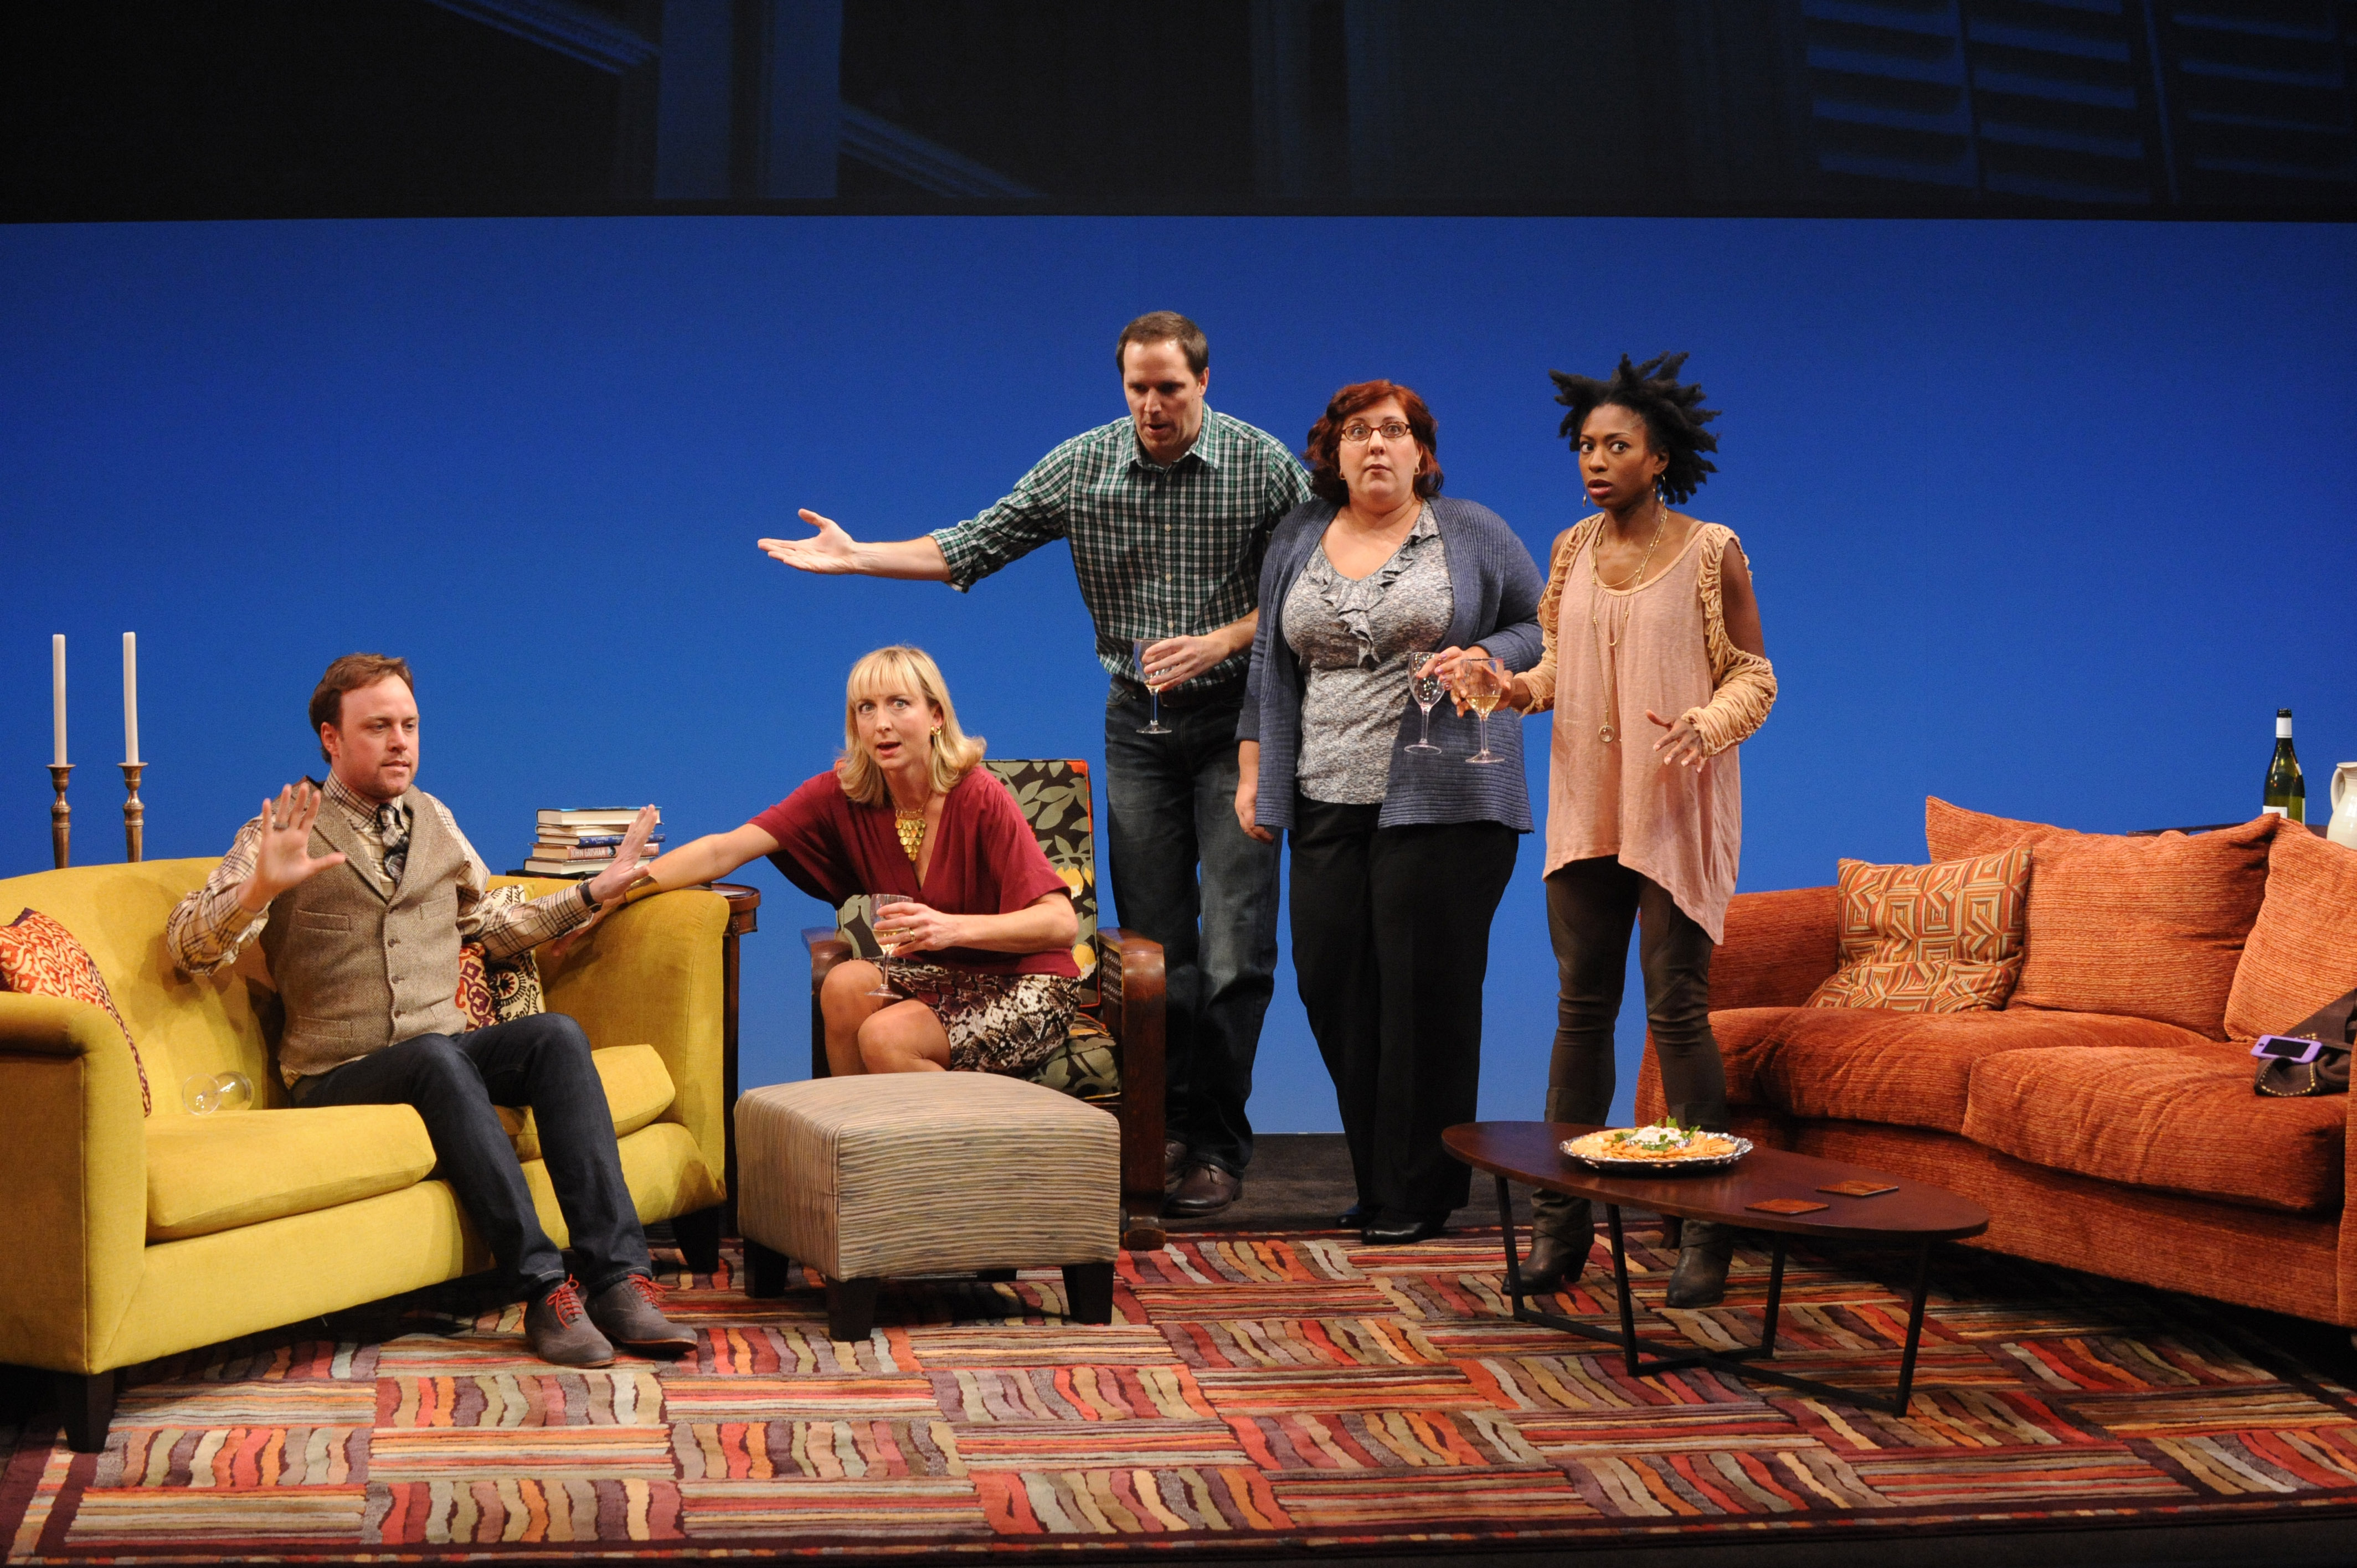 Tom Story as Will, Kate Eastwood Norris as Ana, Eric Messner as Rob, Ashlie Atkinson as Jen and Rachael Holmes as Lily in Arena Stage at the Mead Center for American Theater's production of The Book Club Play. Photo by Stan Barouh.